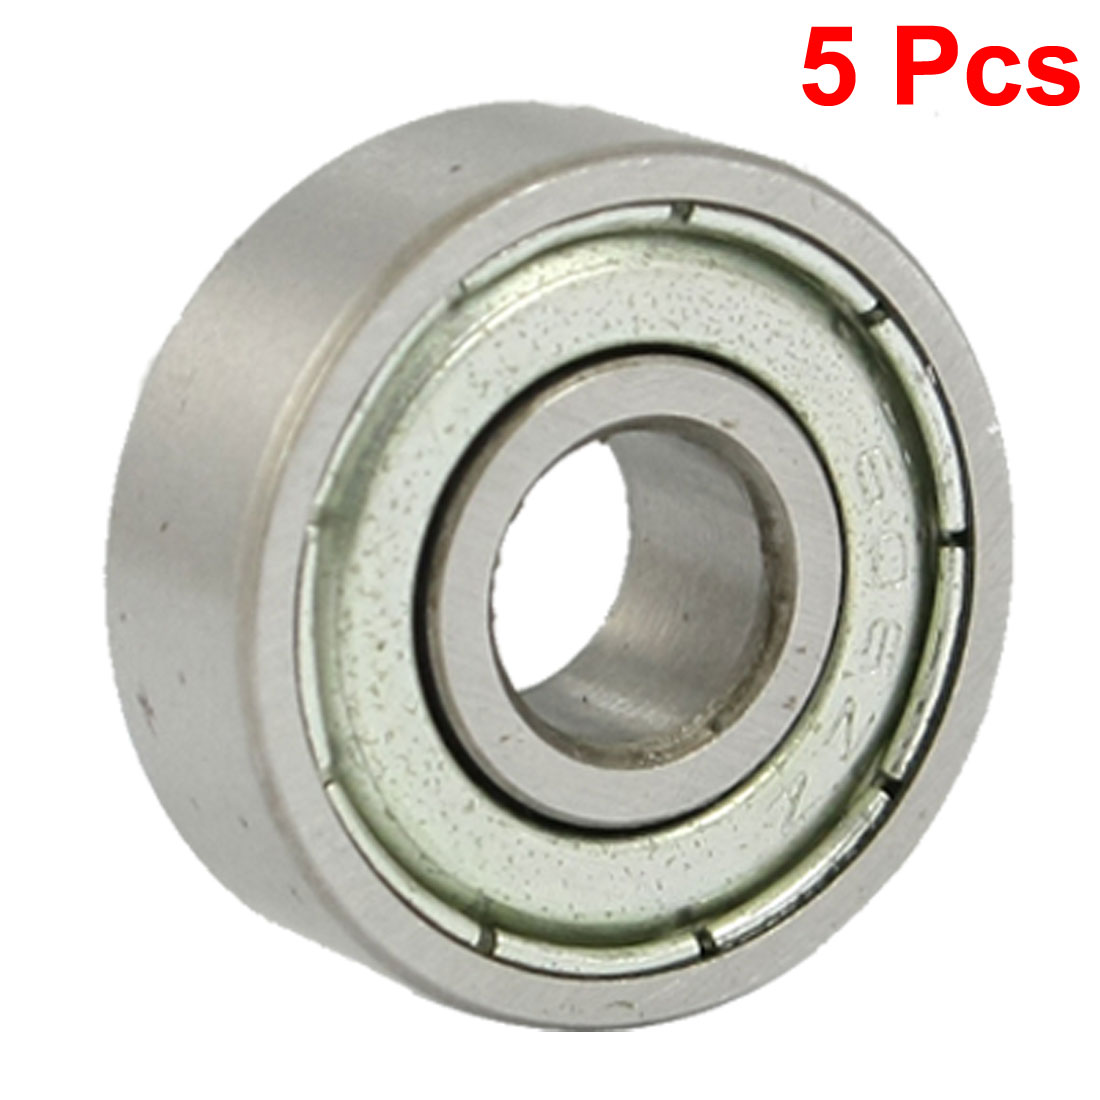 606Z 6 x 17 x 6mm Metal Miniature Deep Groove Ball Bearings 5 Pcs